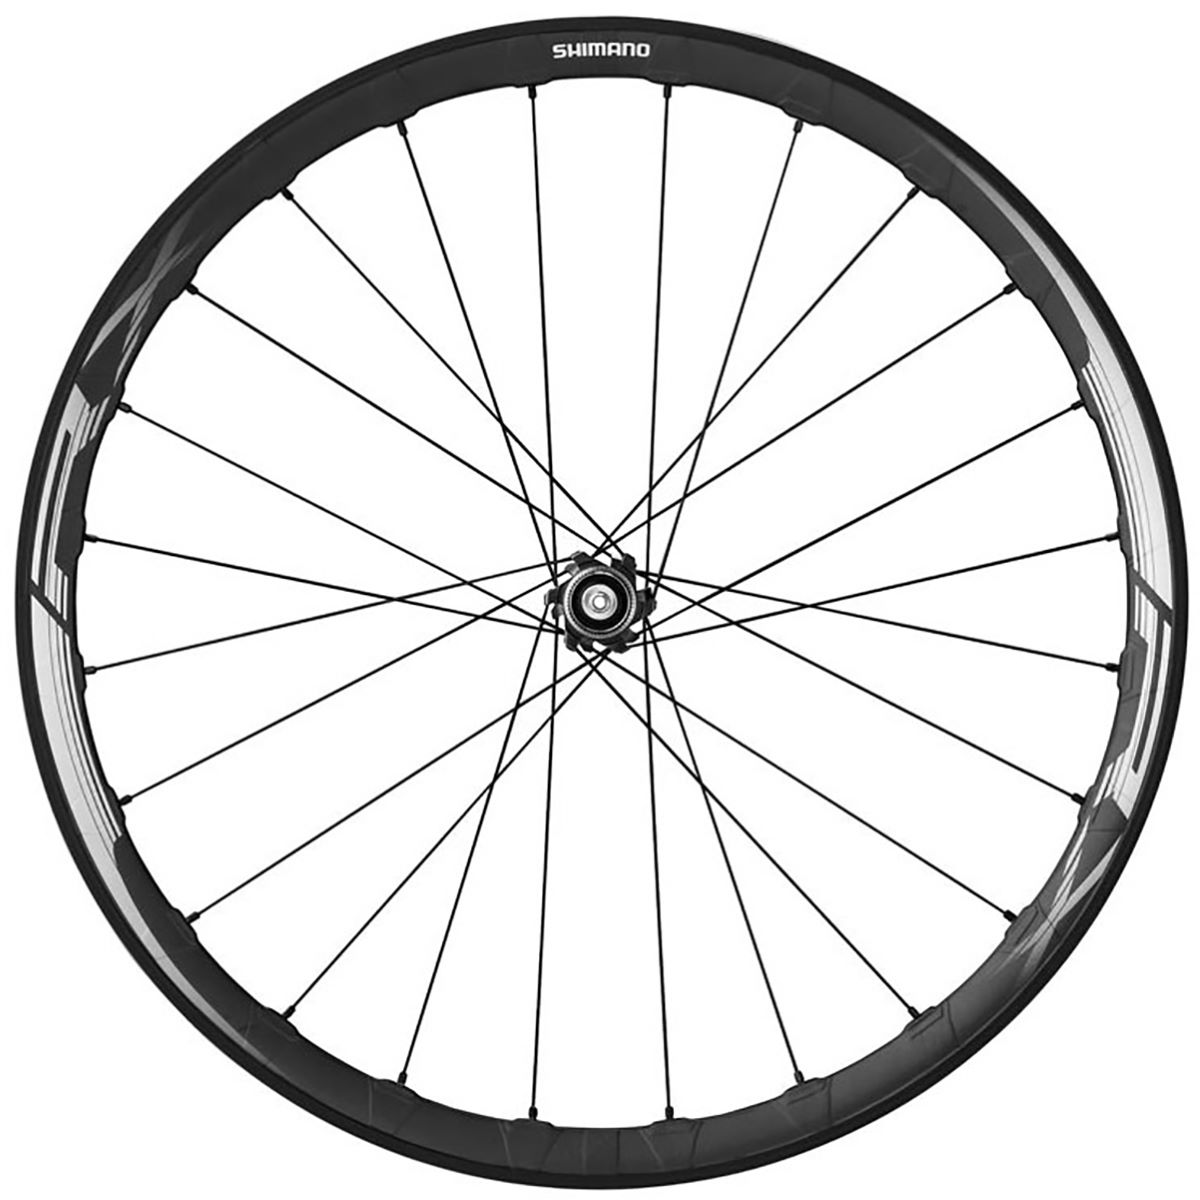 Shimano RX830 Road Disc Front Wheel   Performance Wheels